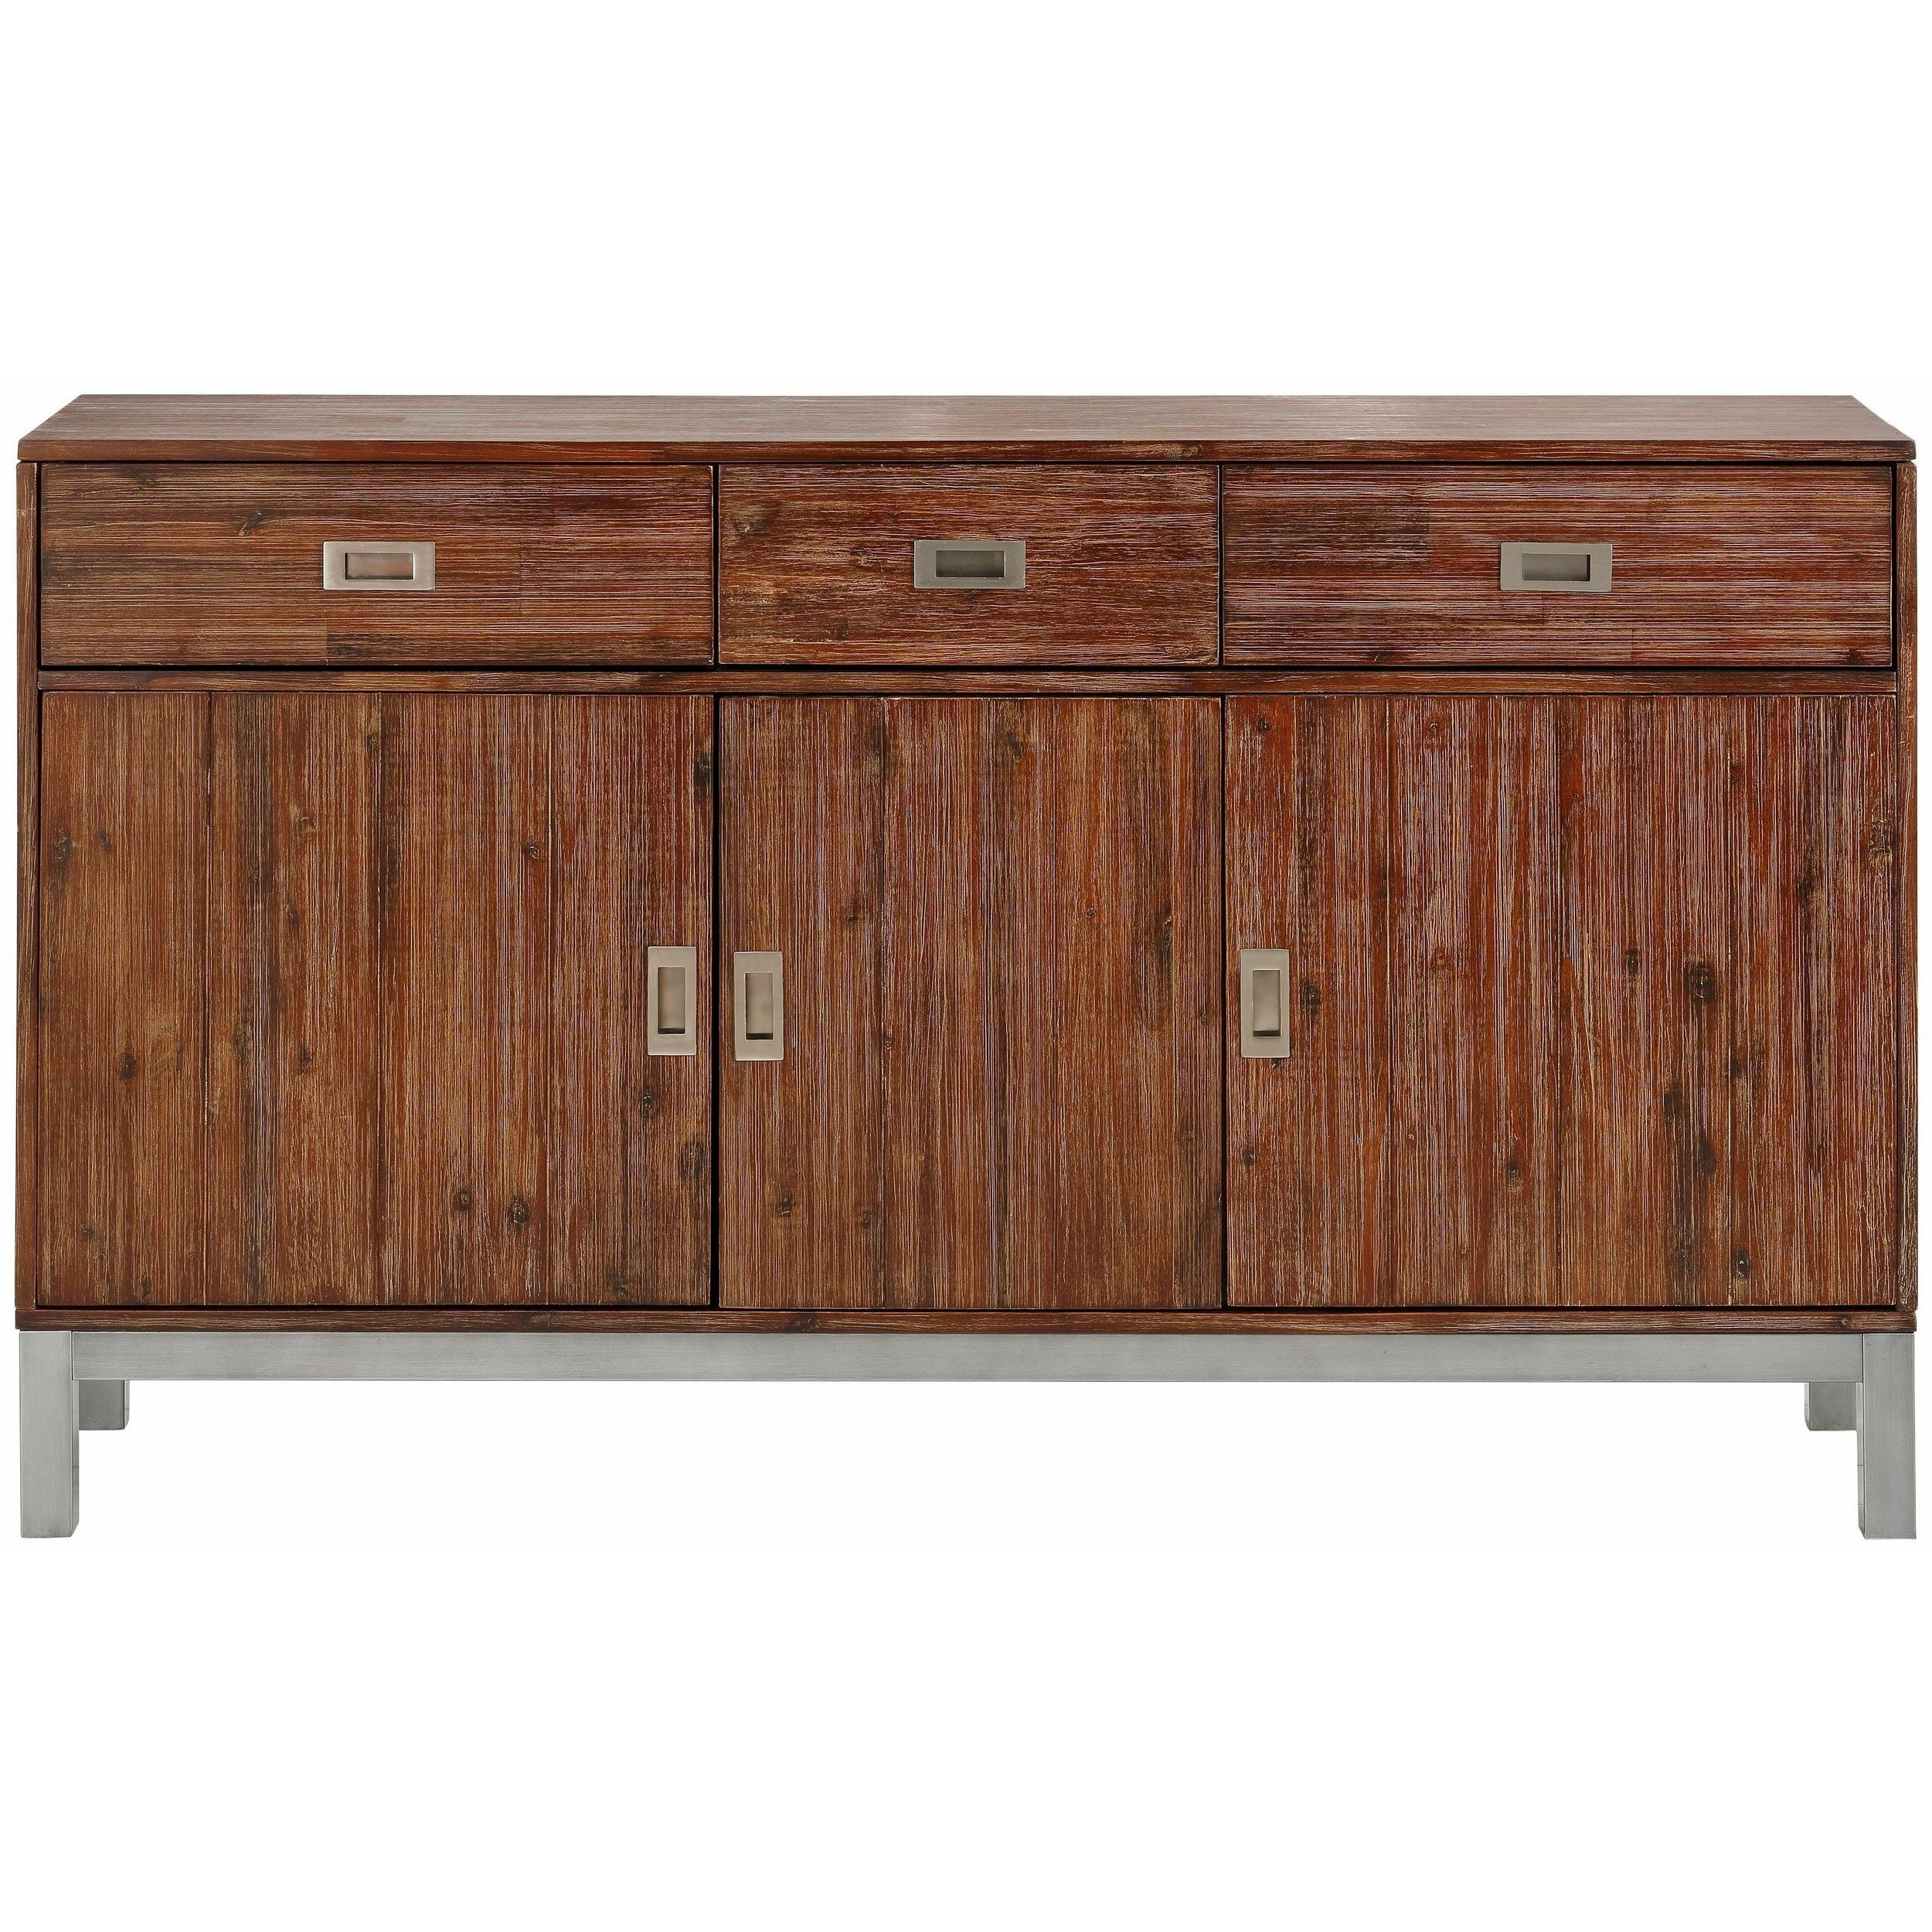 Shop Congo Acacia Wood And Metal Sideboard With 3 Doors And 3 throughout Acacia Wood 4-Door Sideboards (Image 20 of 30)